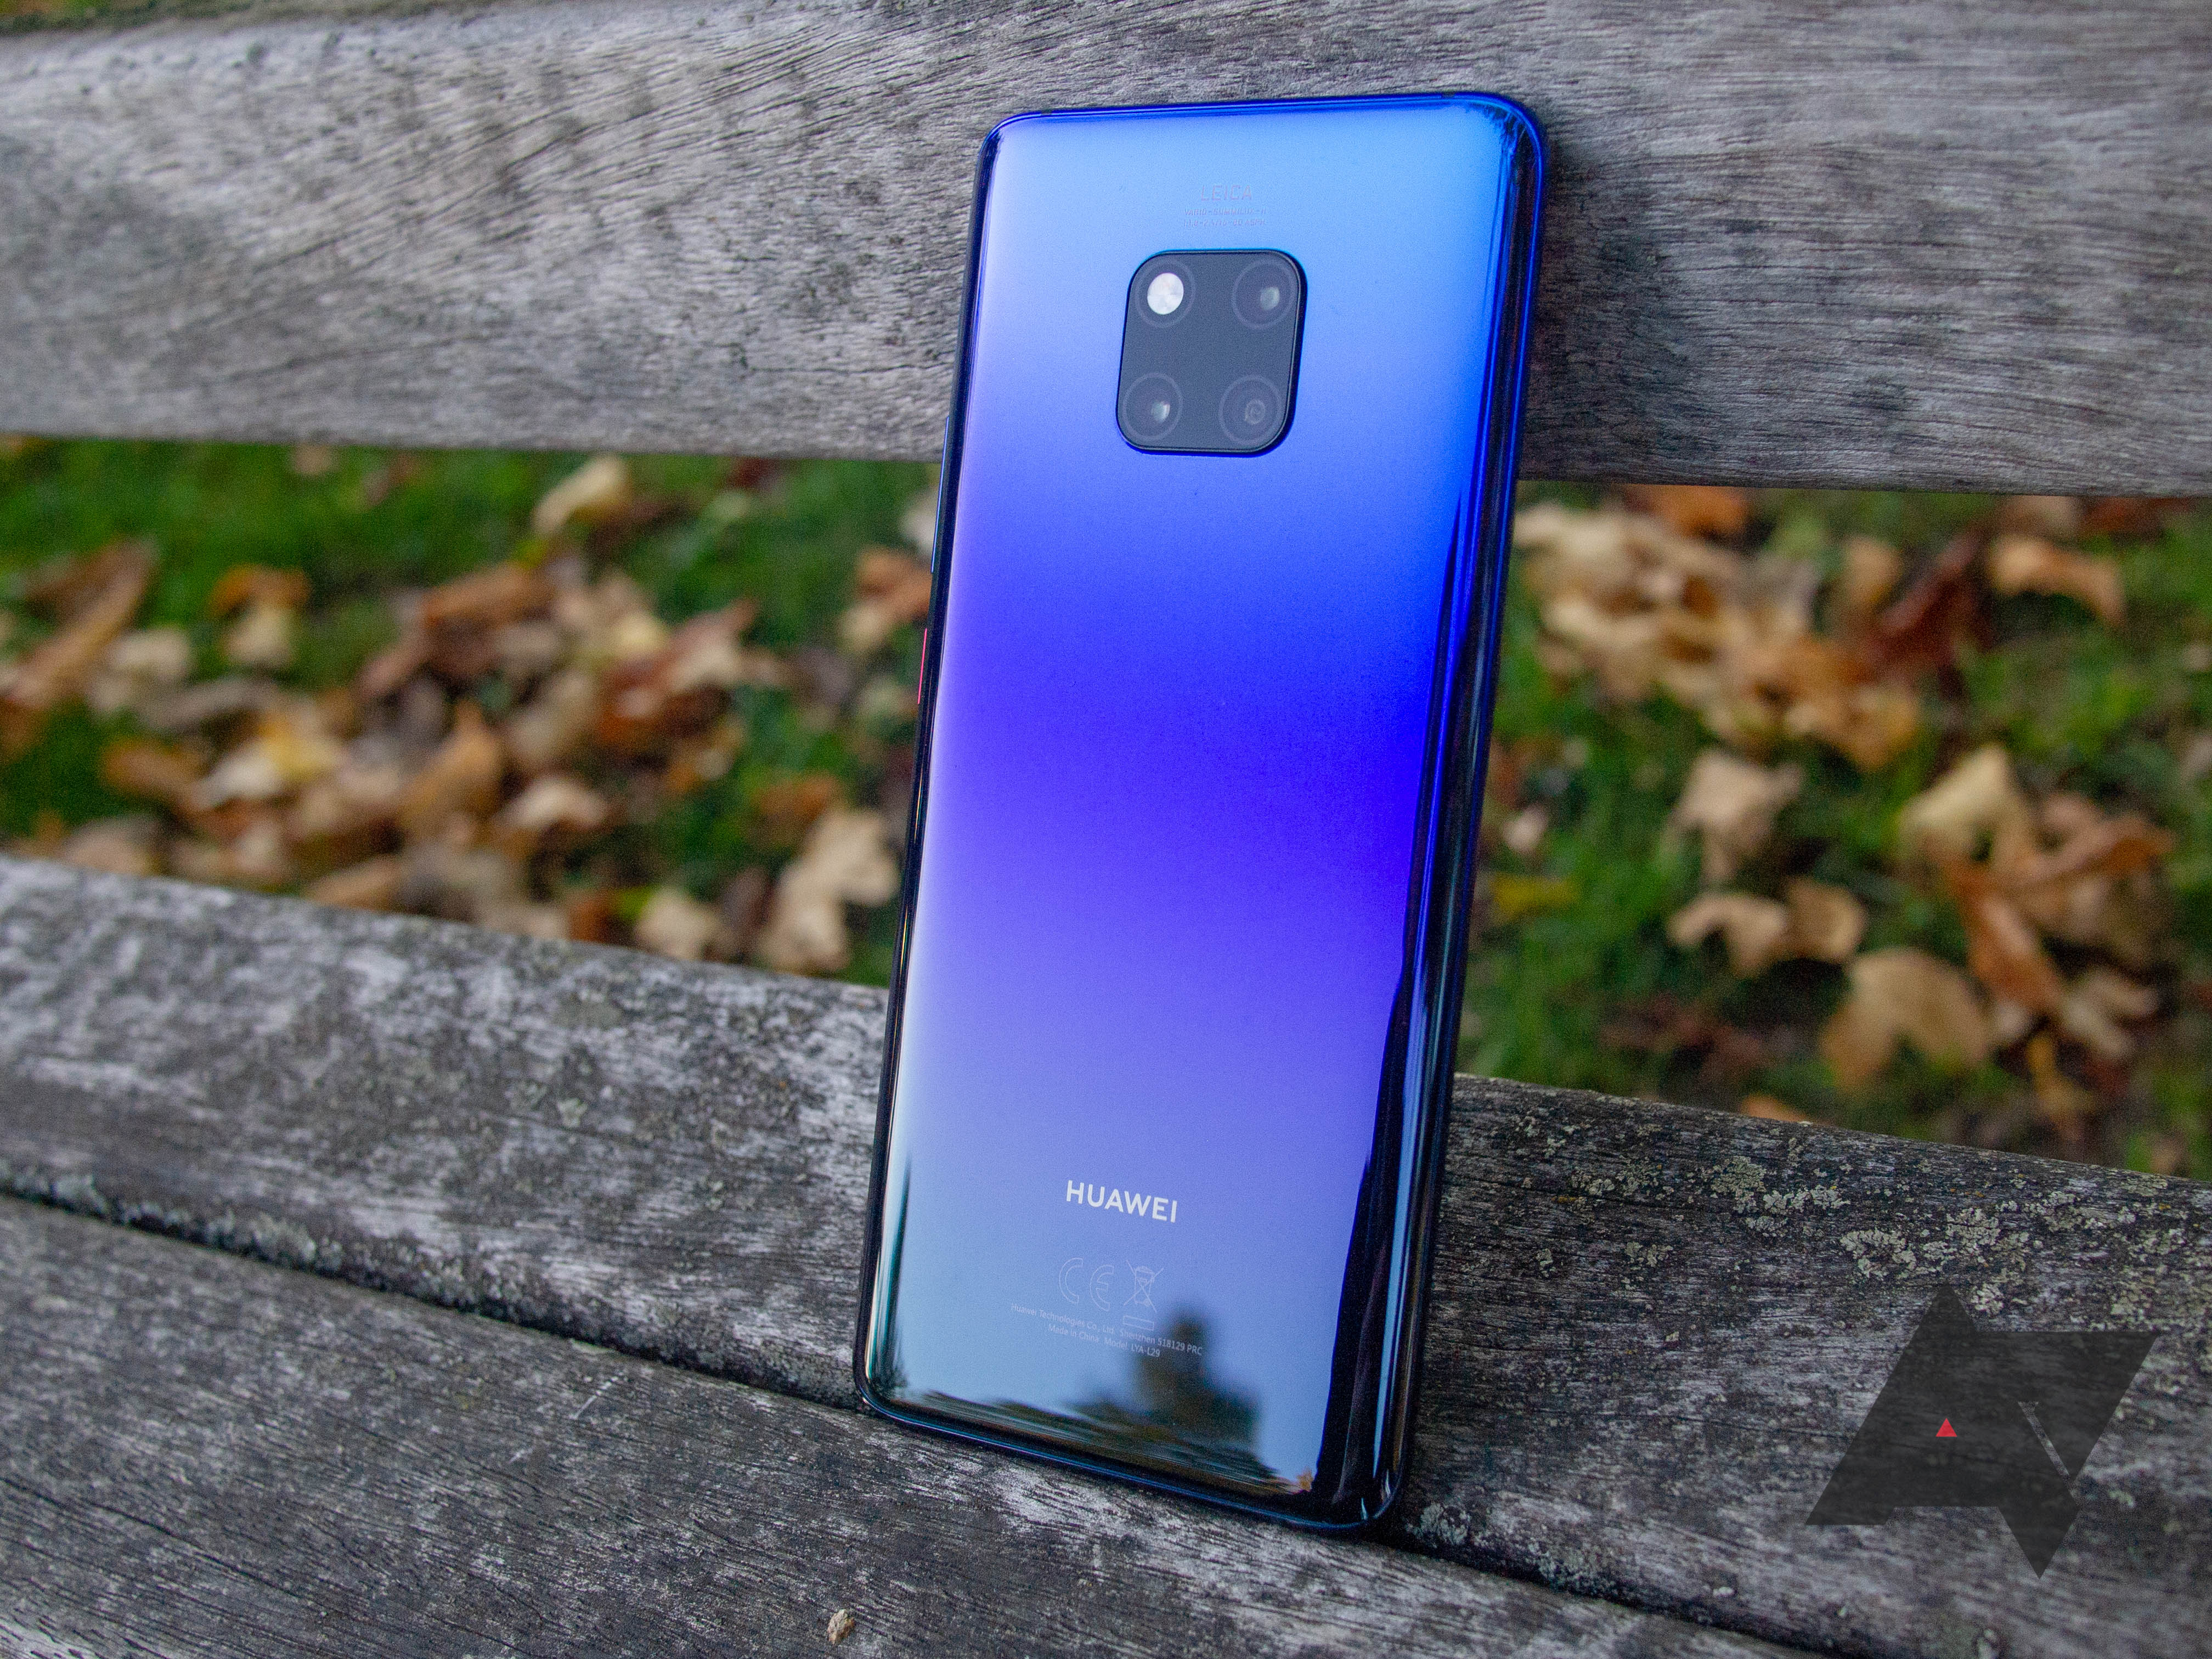 Android 10 beta available for some Huawei Mate 20 Pro devices ahead of schedule